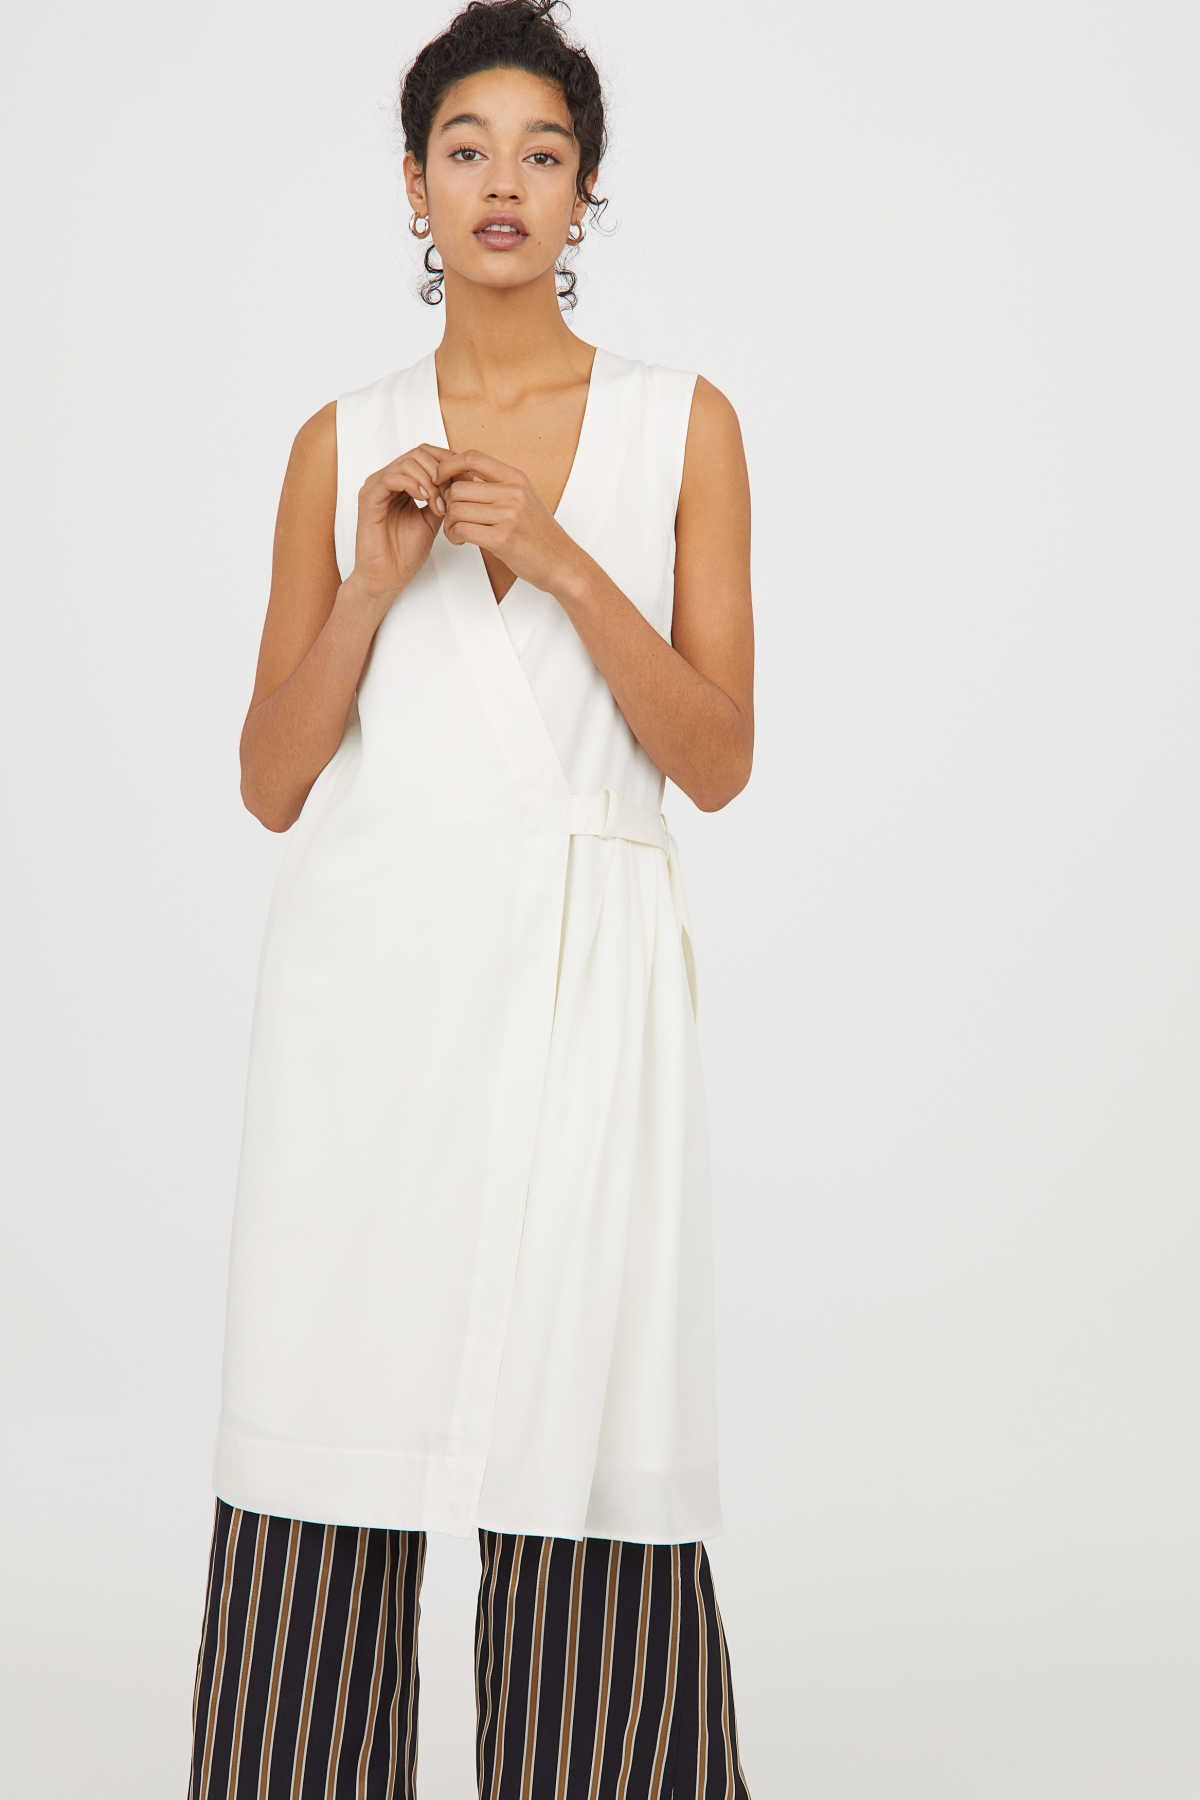 White Conscious Sleeveless V Neck Dress In Woven Tencel Lyocell Wrap Front With Inner Button Tab At Waist With D Rings An Dkny Dress White Dress Dresses [ 1800 x 1200 Pixel ]